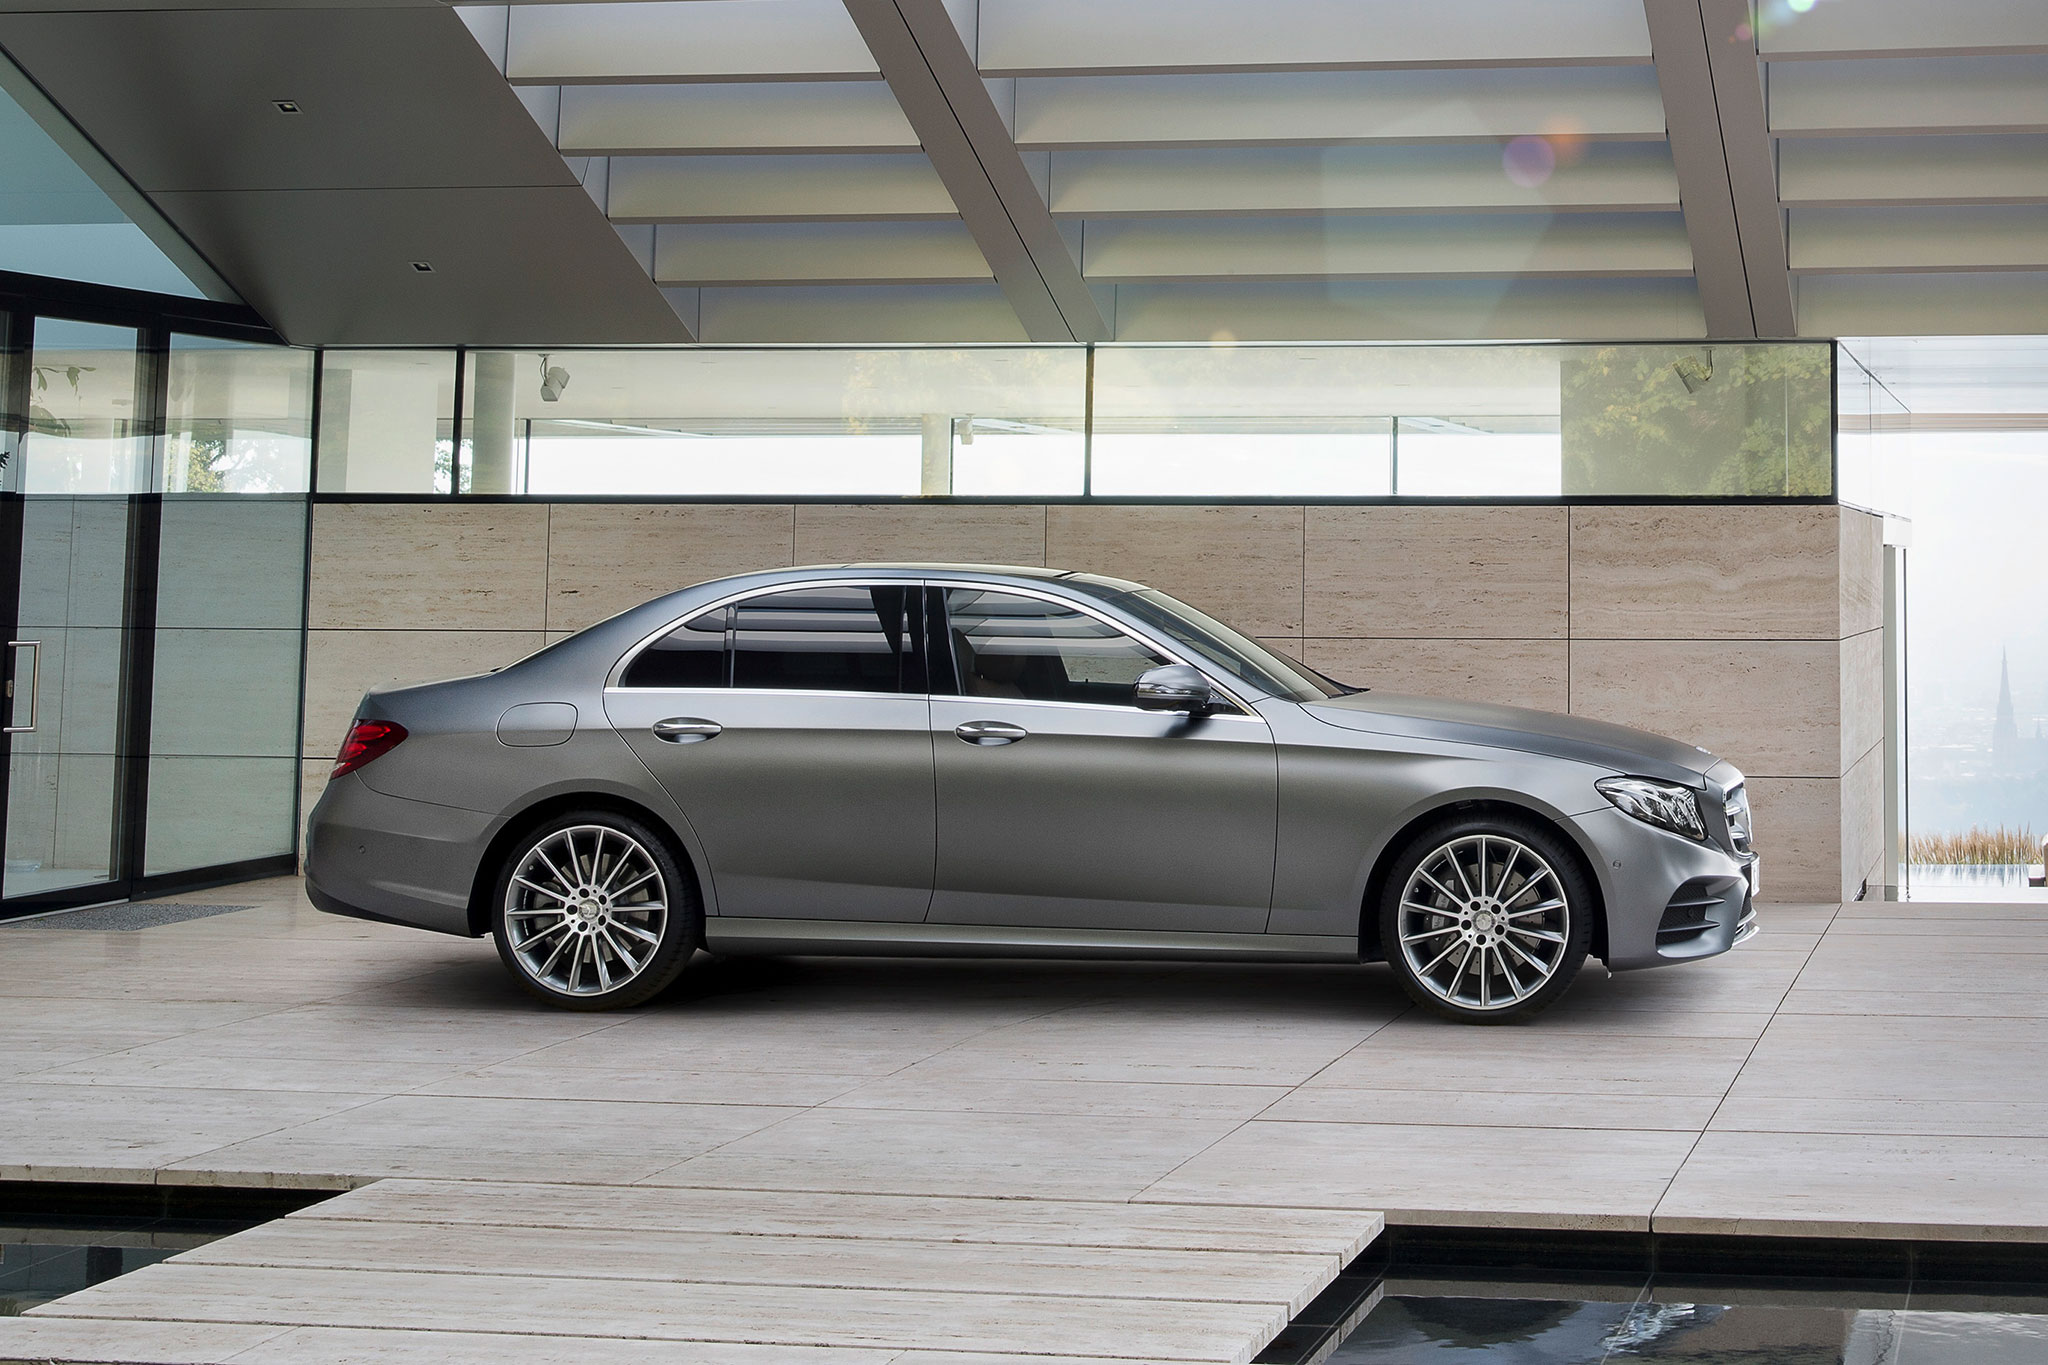 2017 mercedes benz e class debuts with sleek looks tons for 2017 mercedes benz e350 price